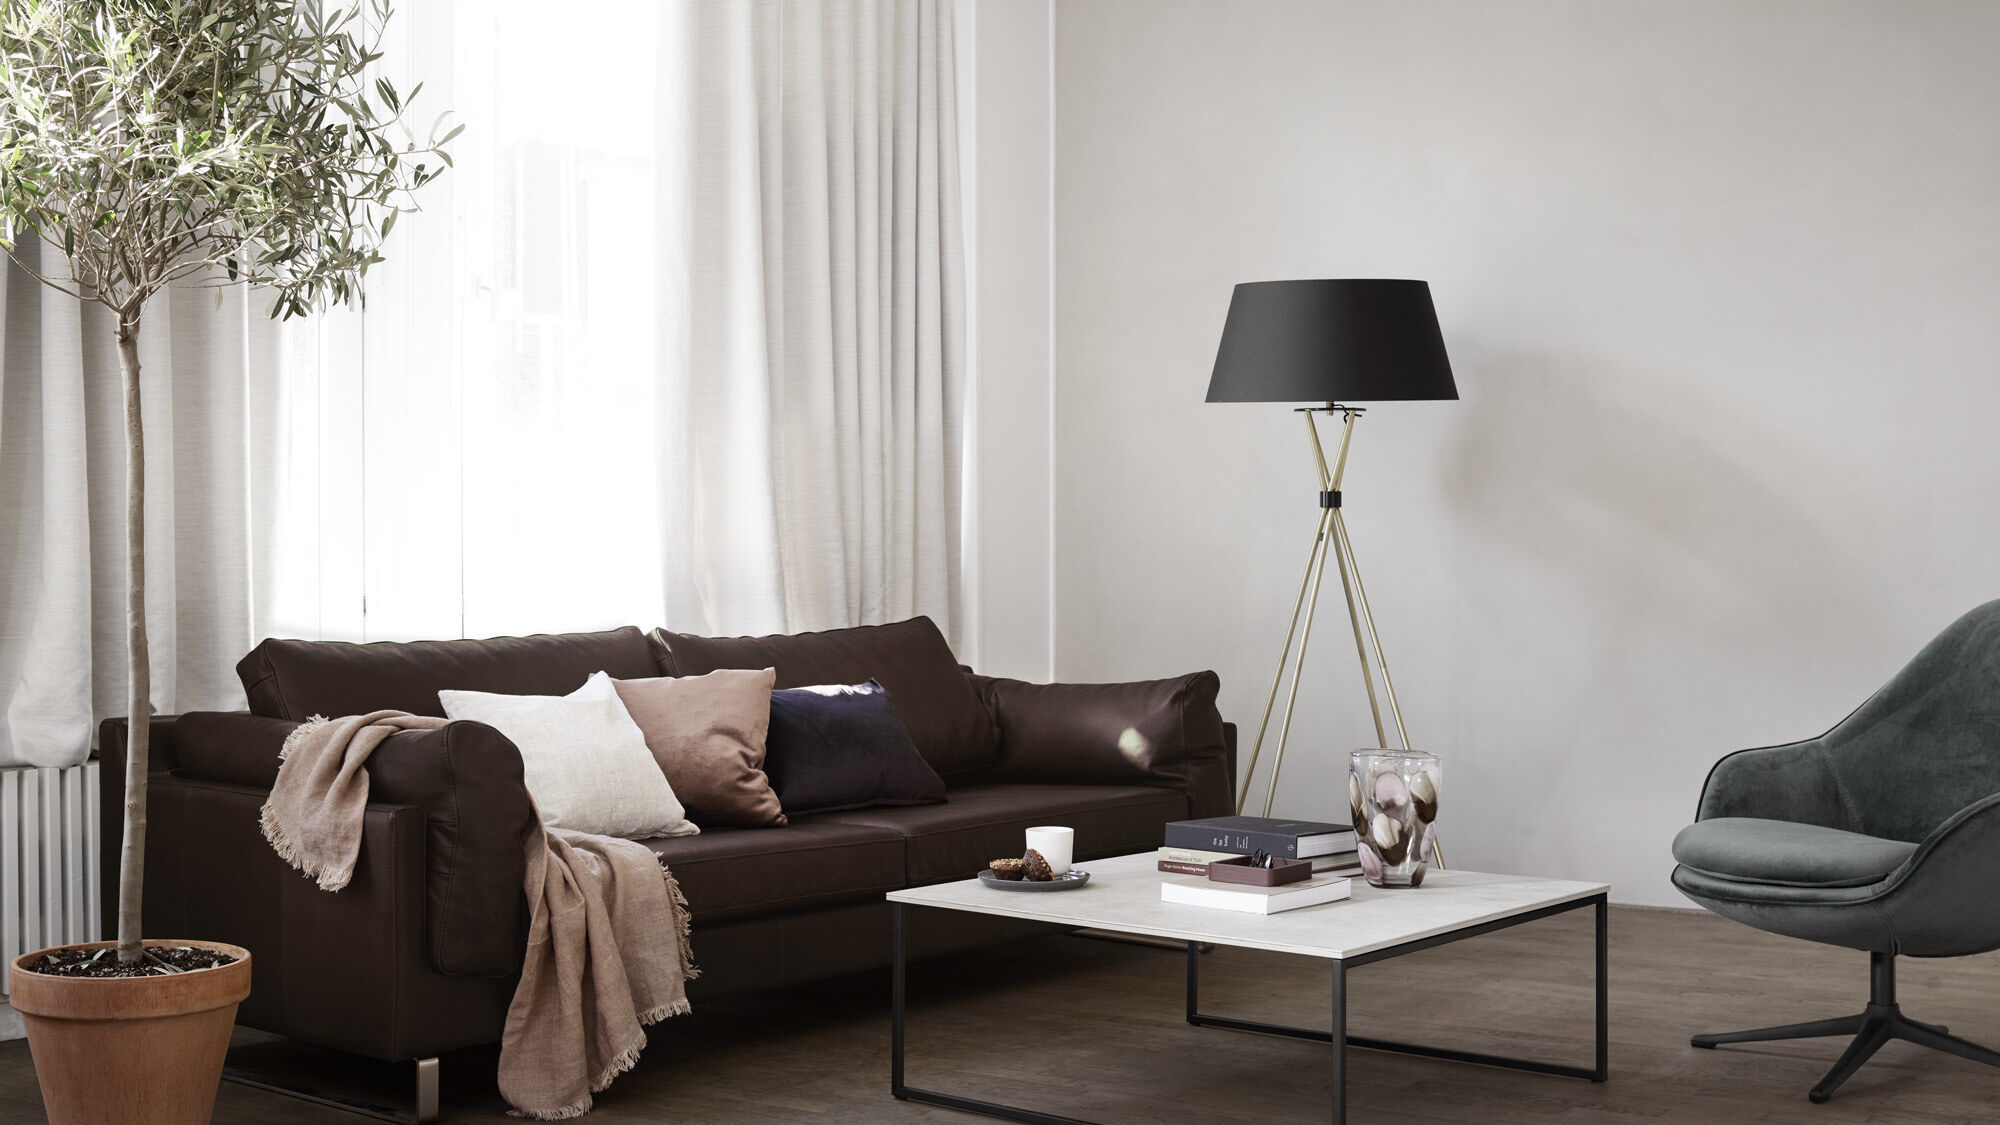 Lamps - Demand floor lamp